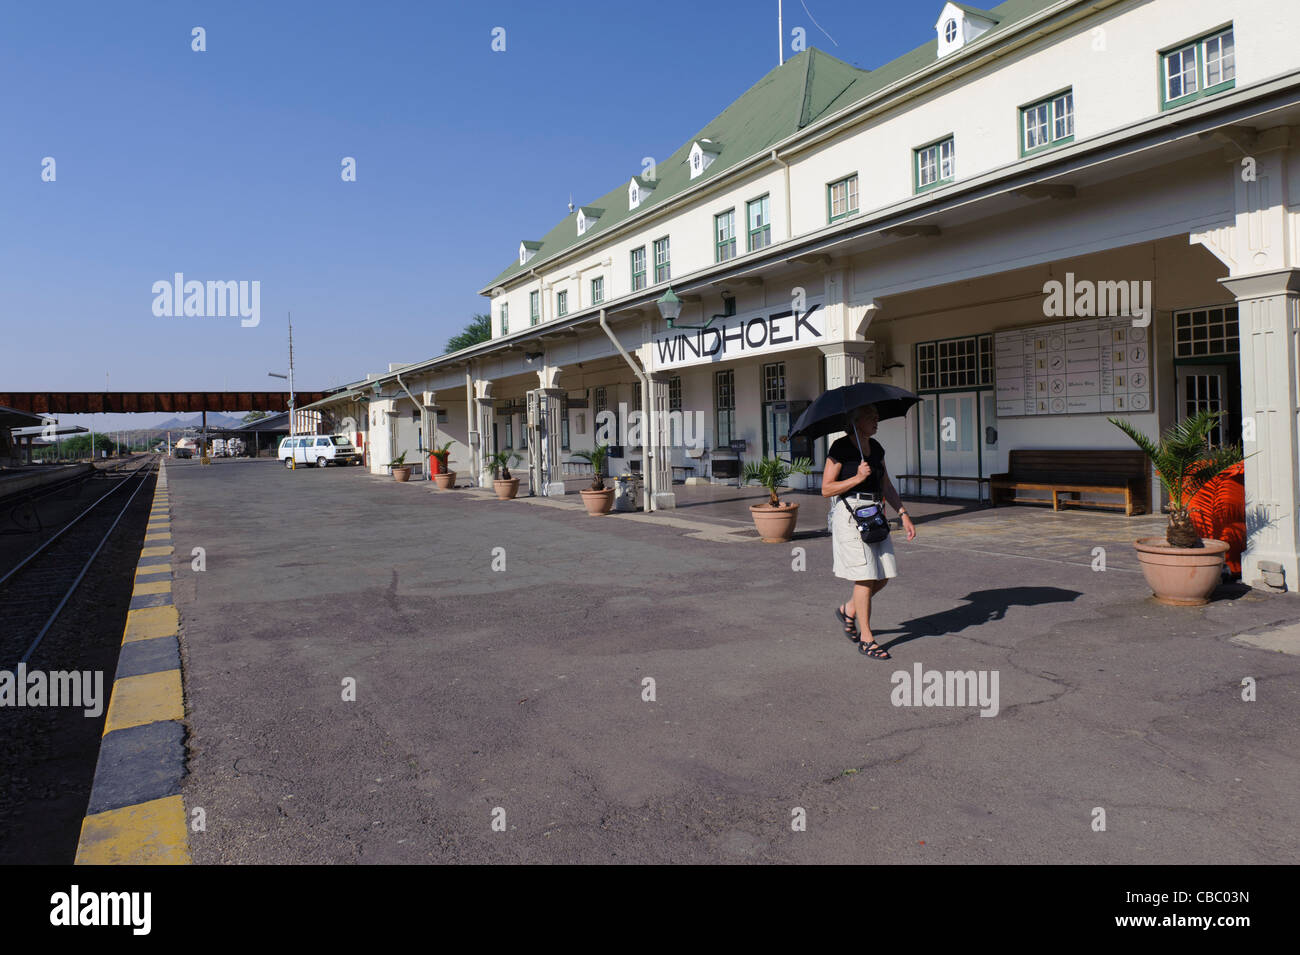 Platform of the Cape Dutch-style train station in Windhoek, Namibia. - Stock Image